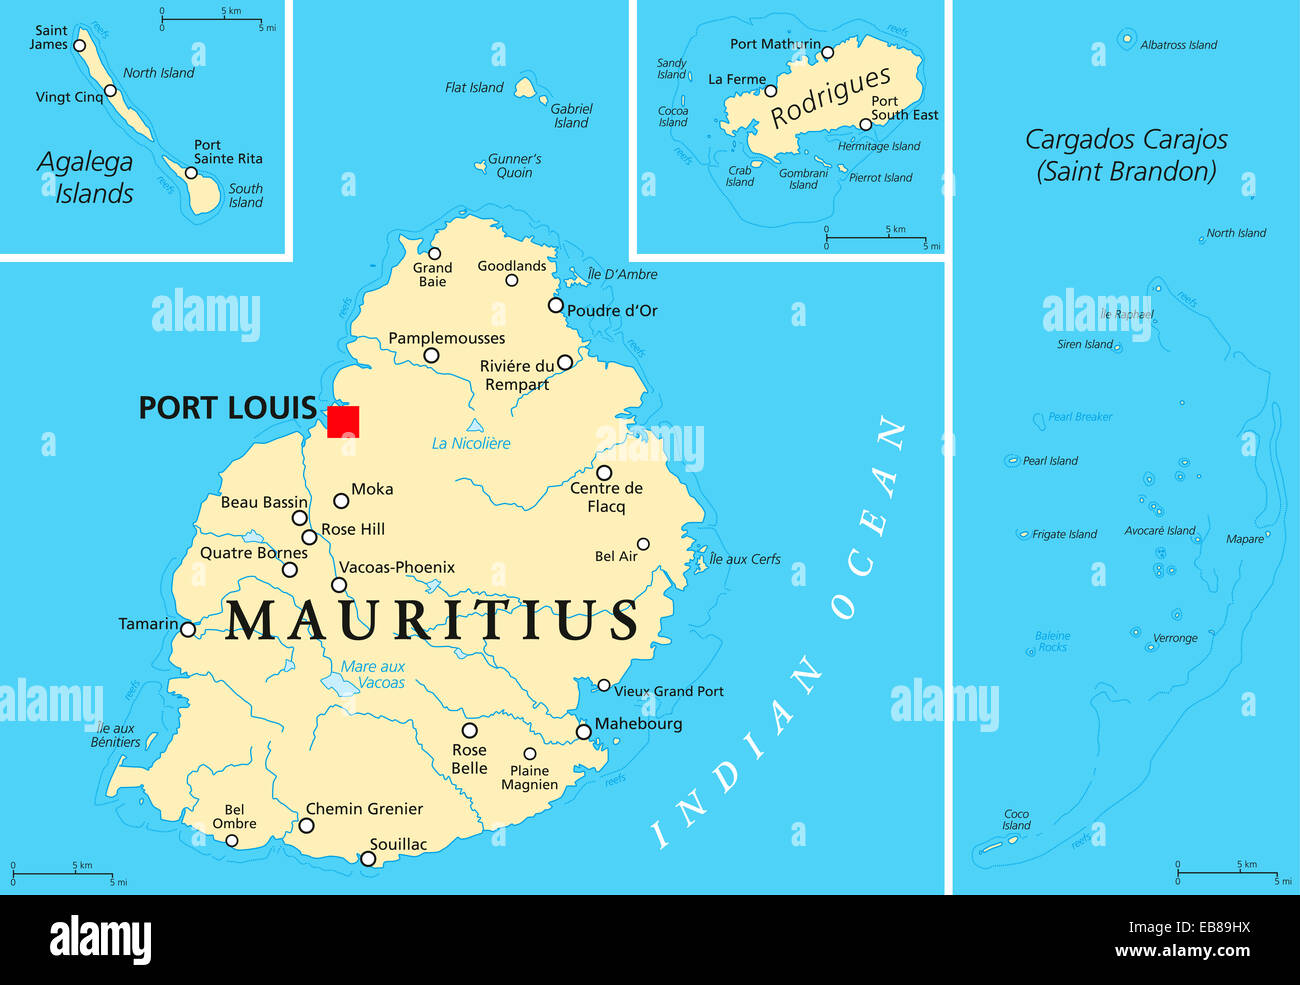 Mauritius Political Map With Capital Port Louis The Islands Stock - Political map of mauritius